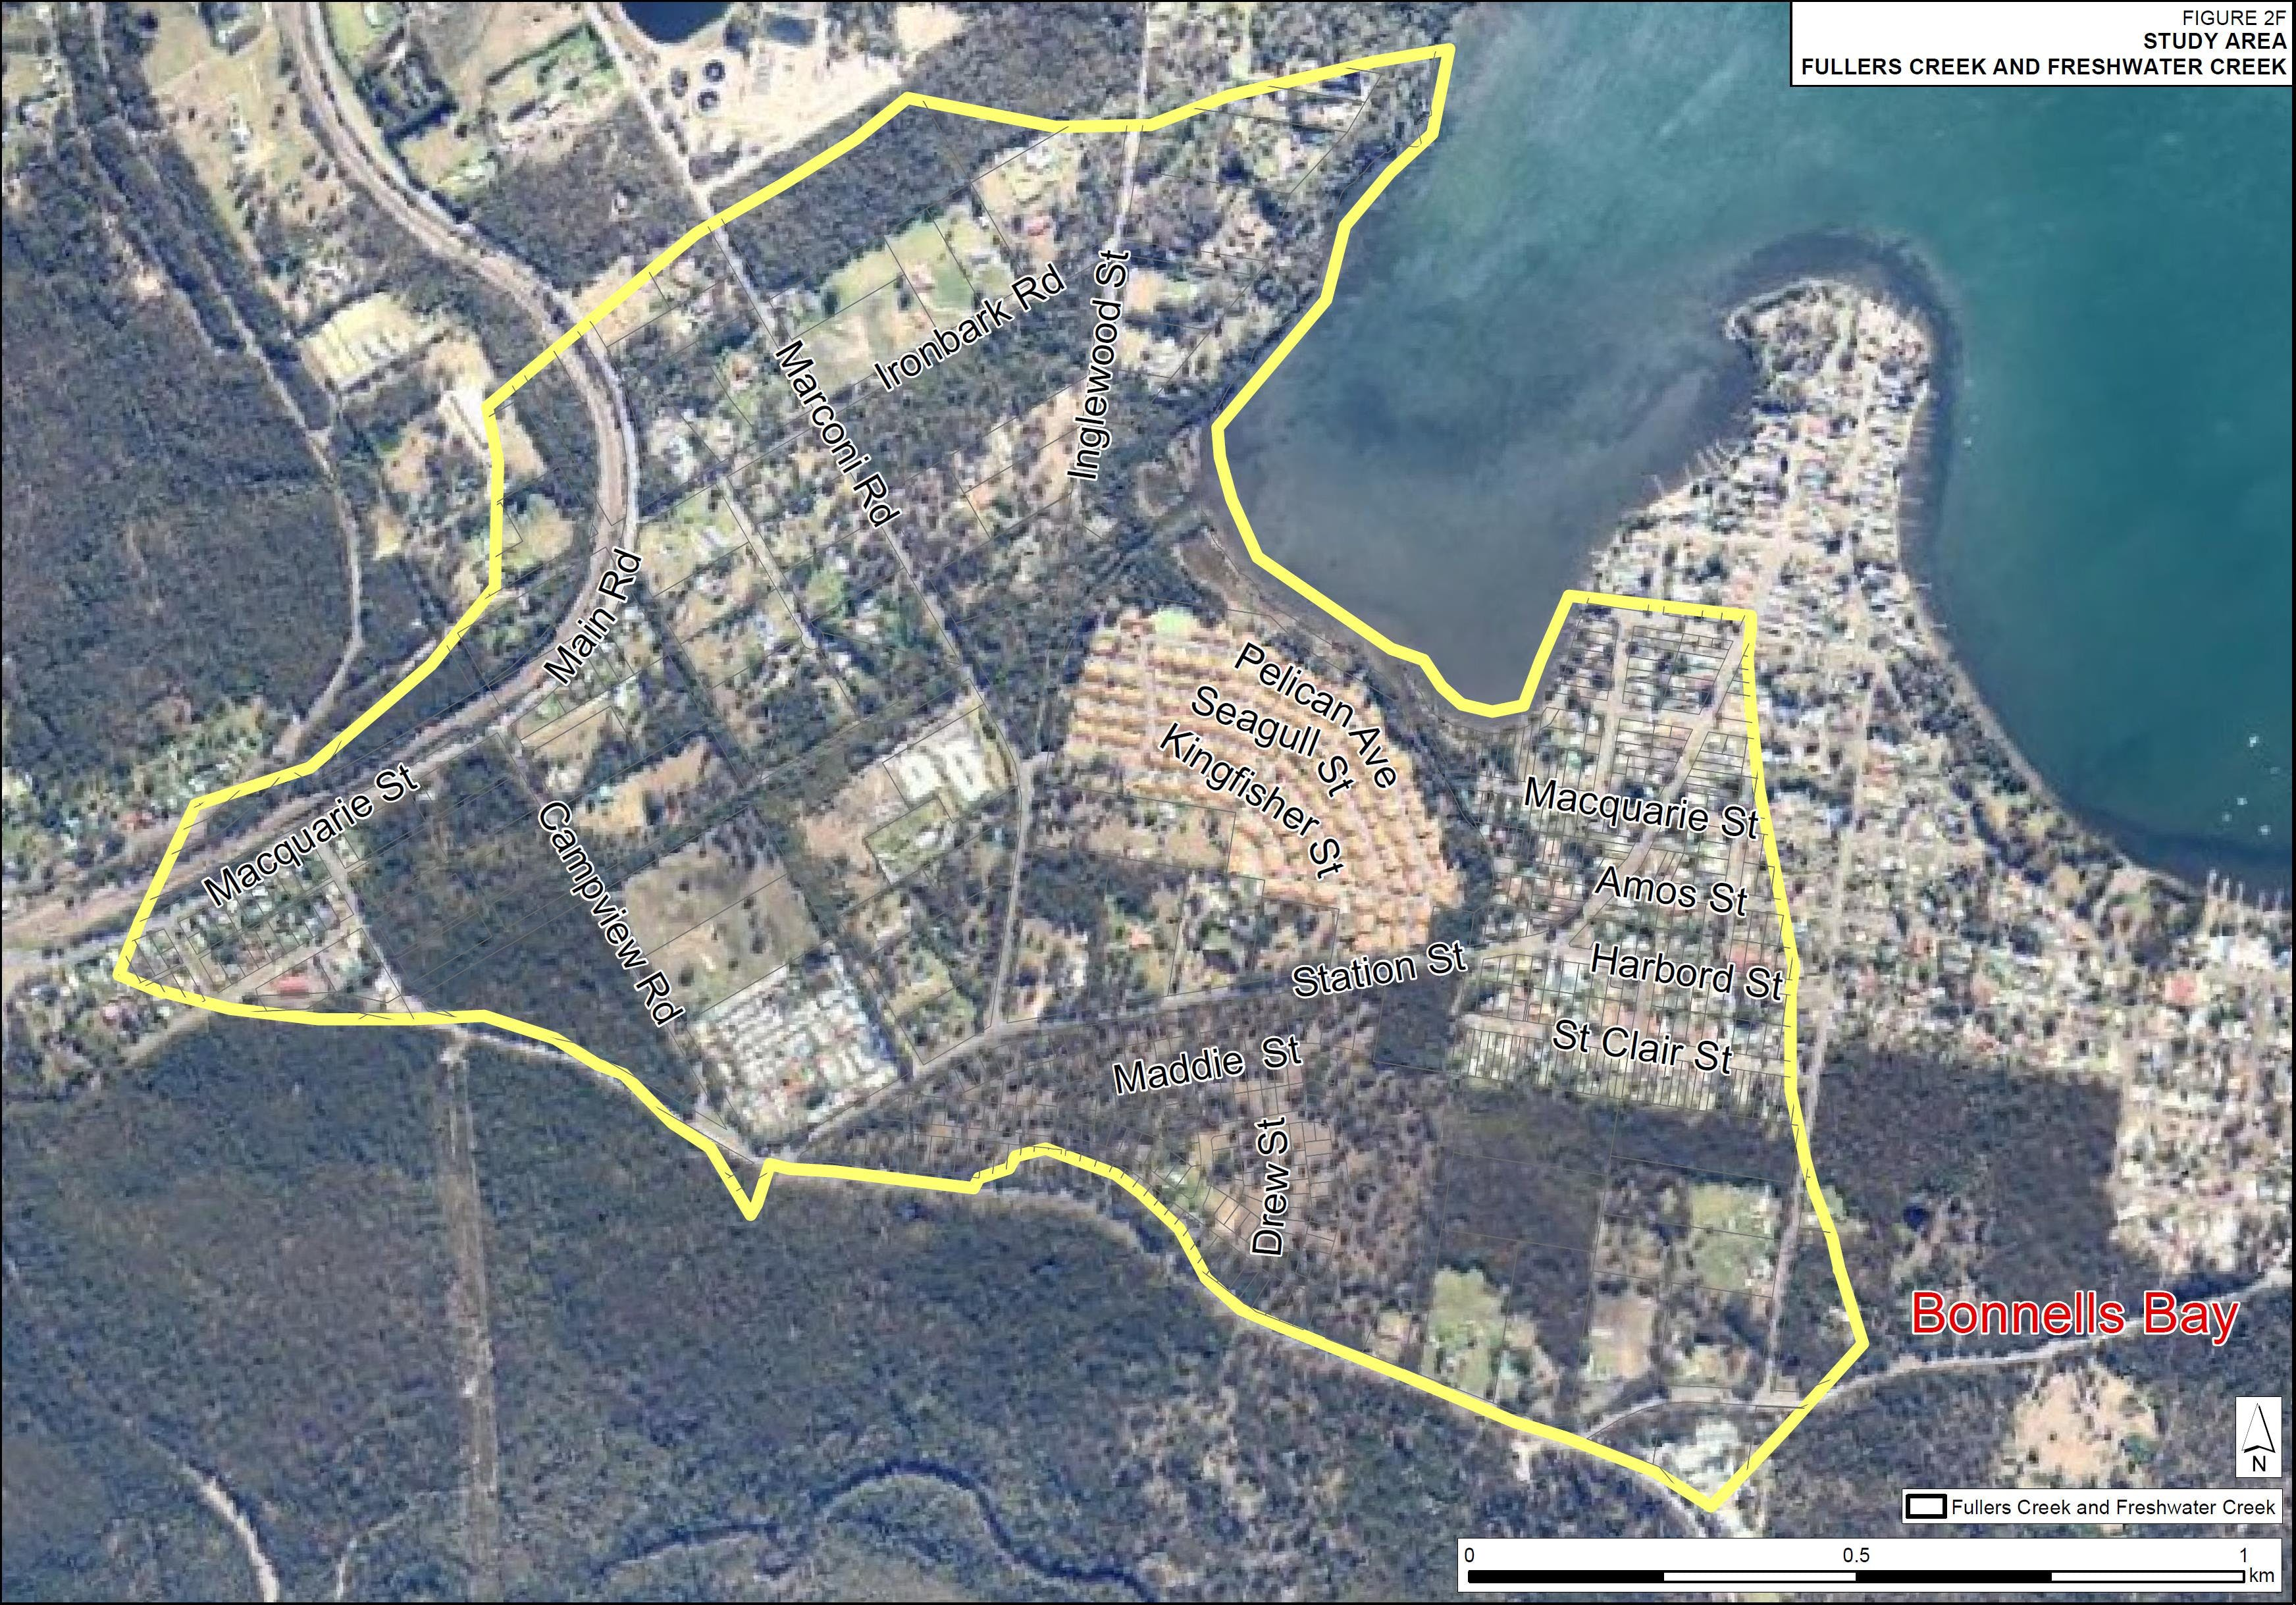 Fullers Creek and Freshwater Creek at Bonnells Bay  flood study catchment